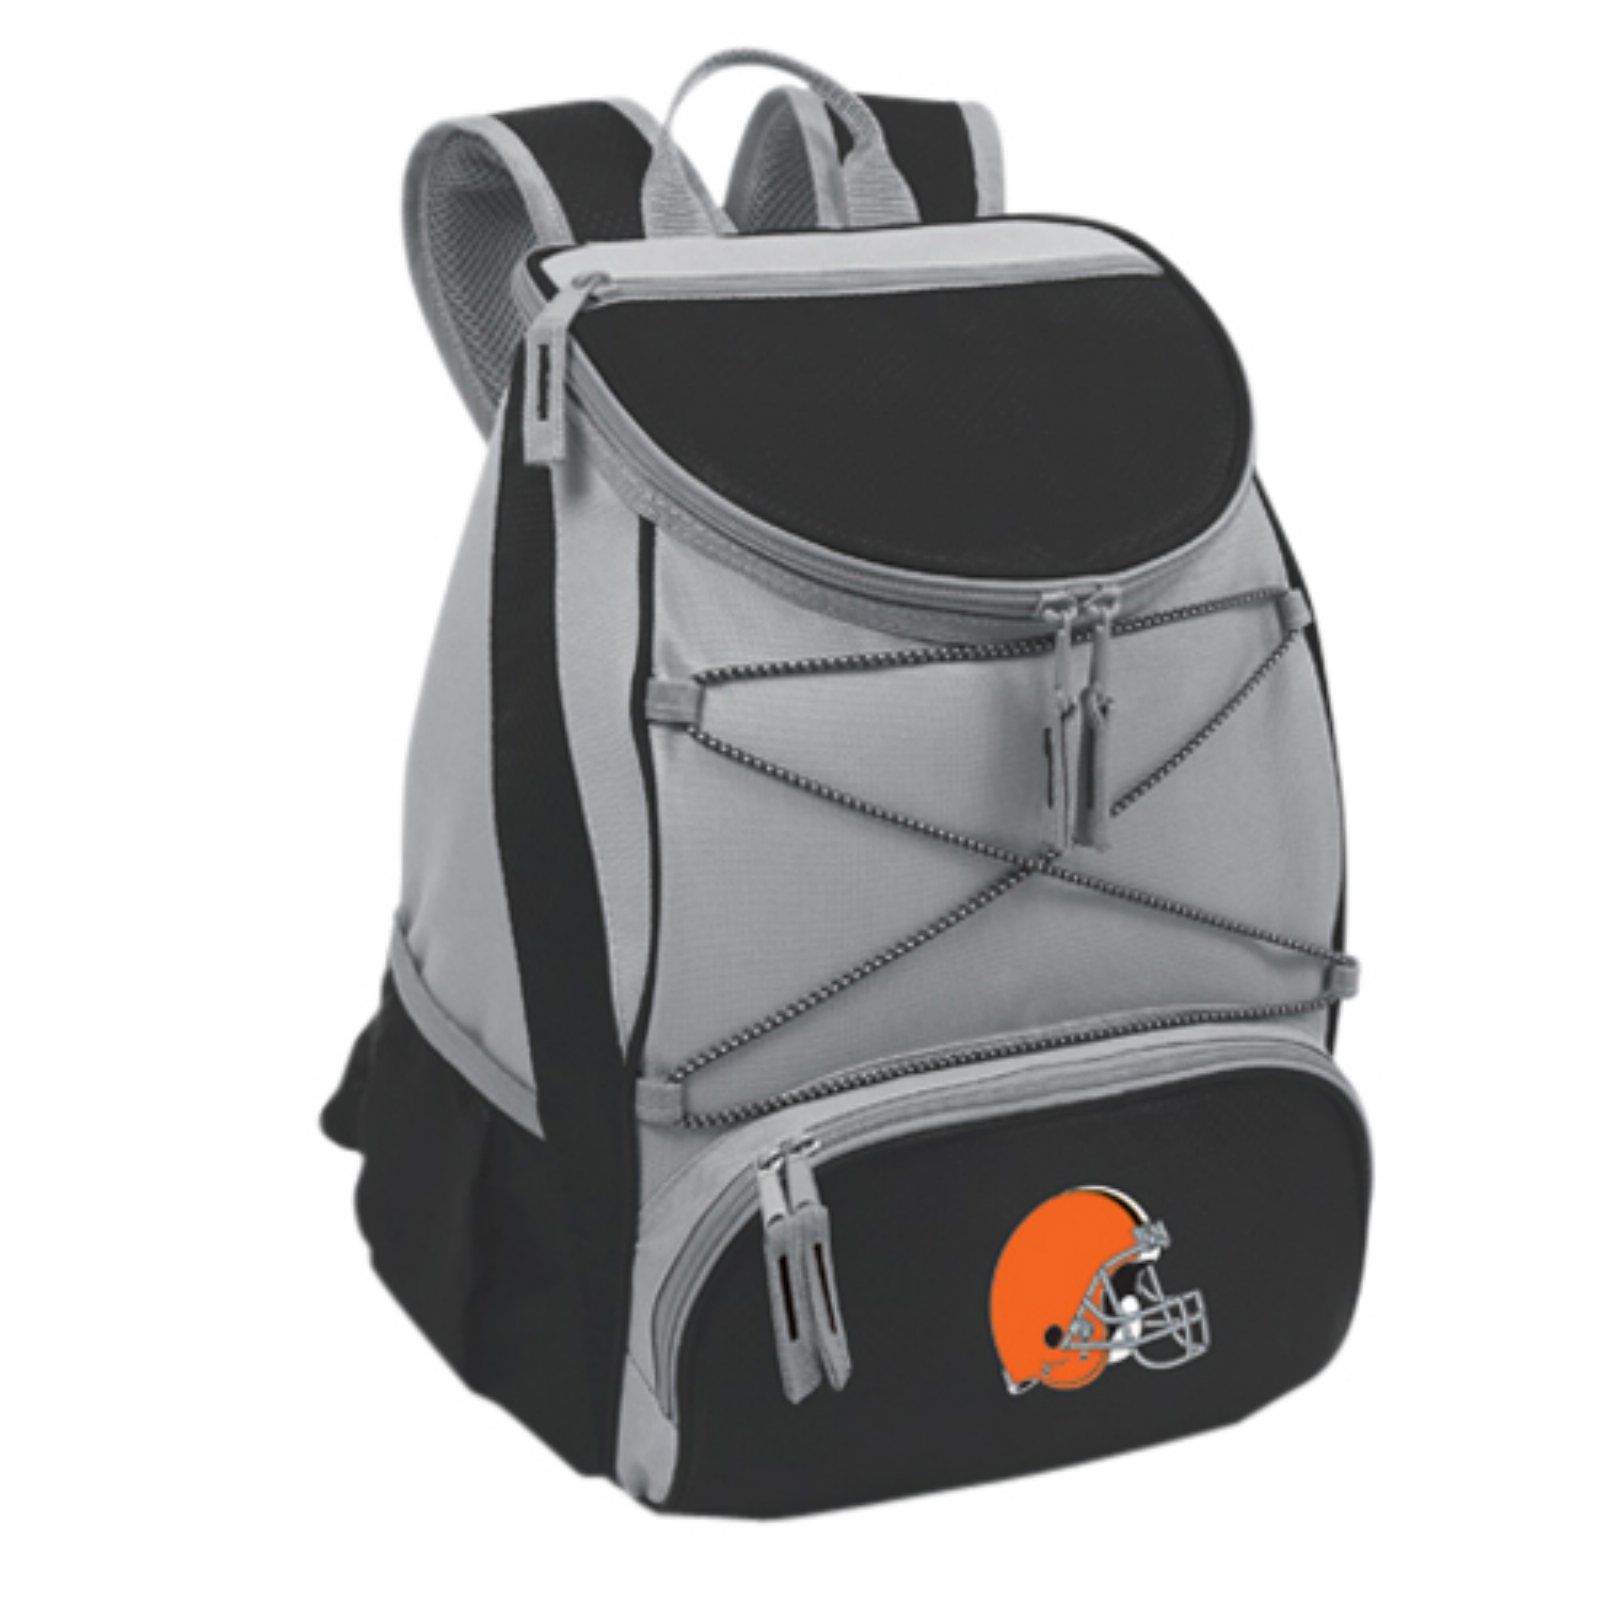 Picnic Time PTX Cooler, Black Cleveland Browns Digital Print